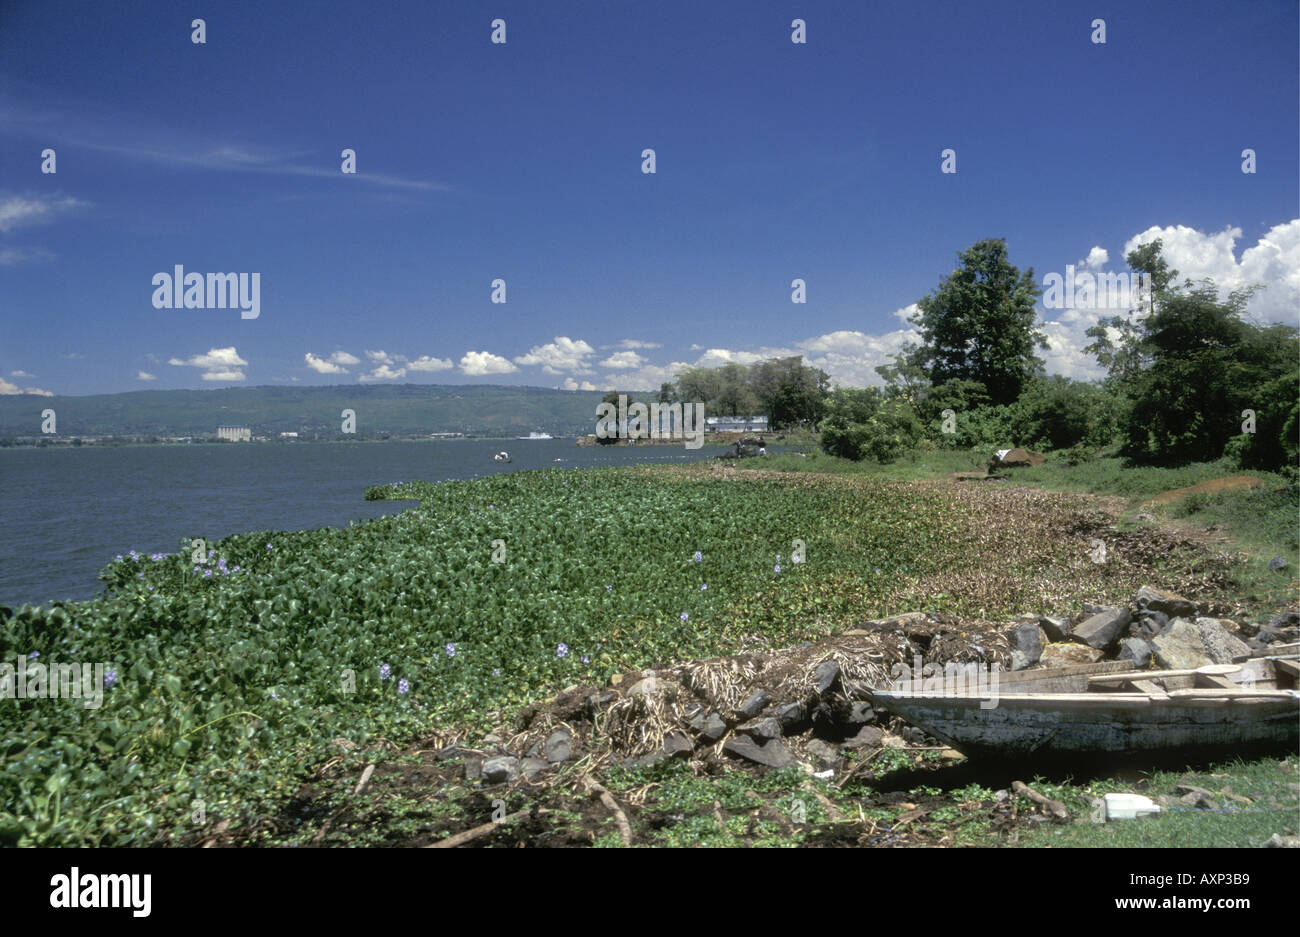 Water Hyacinth growing close the the shore of the Winam Gulf on Lake Victoria Kenya East Africa - Stock Image